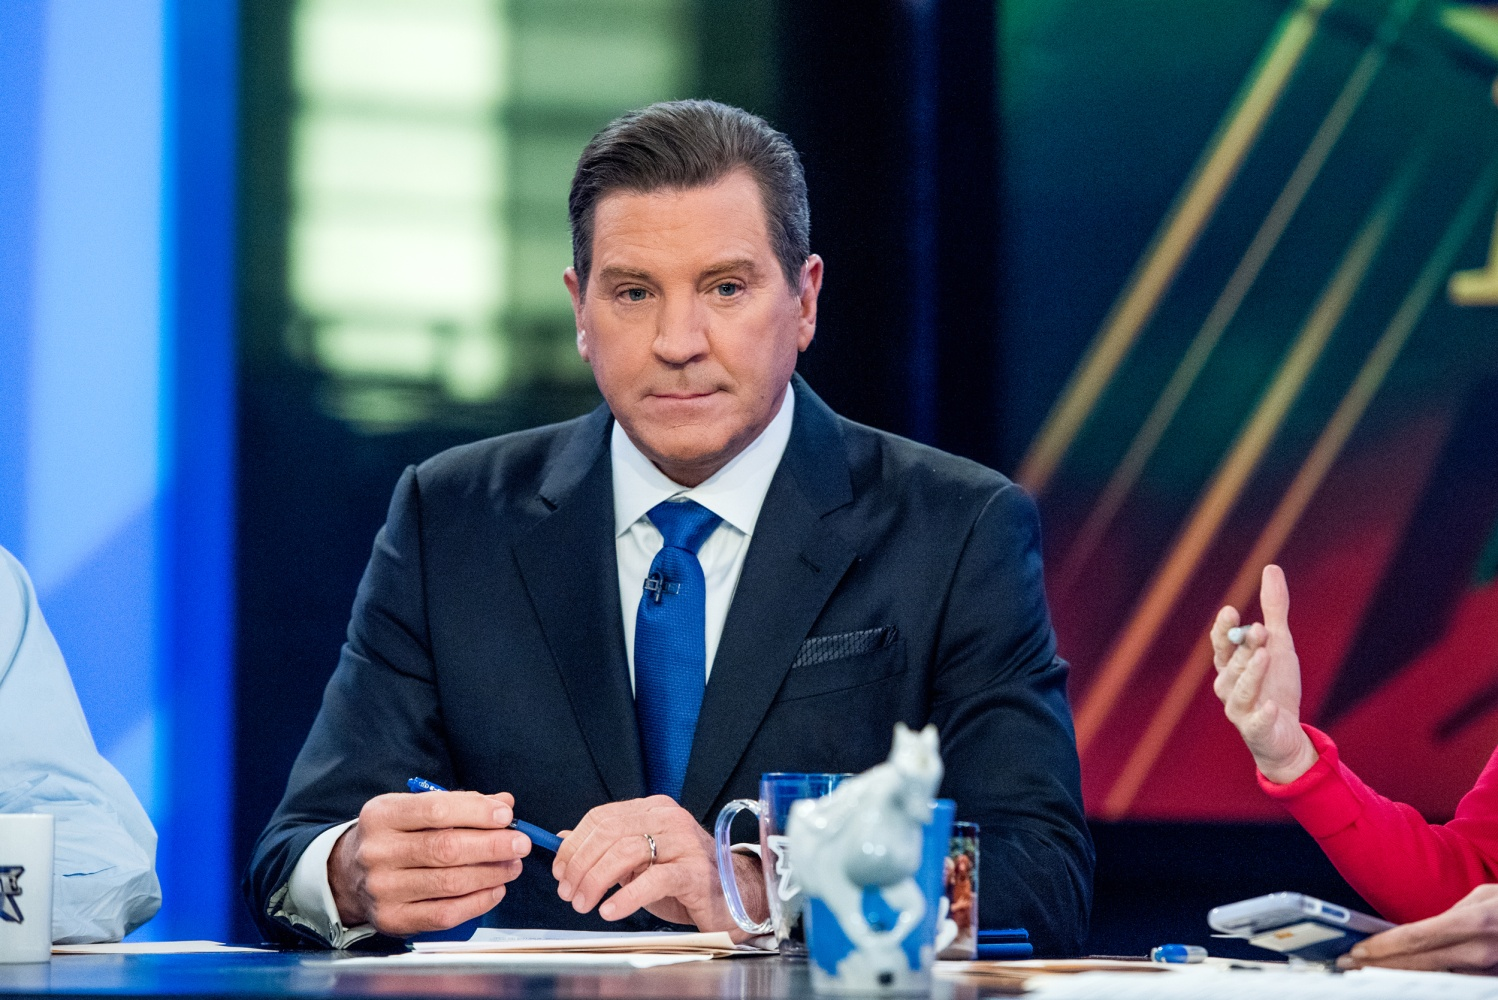 Image Fox Host Eric Bolling sits on the panel of Fox News Channel's